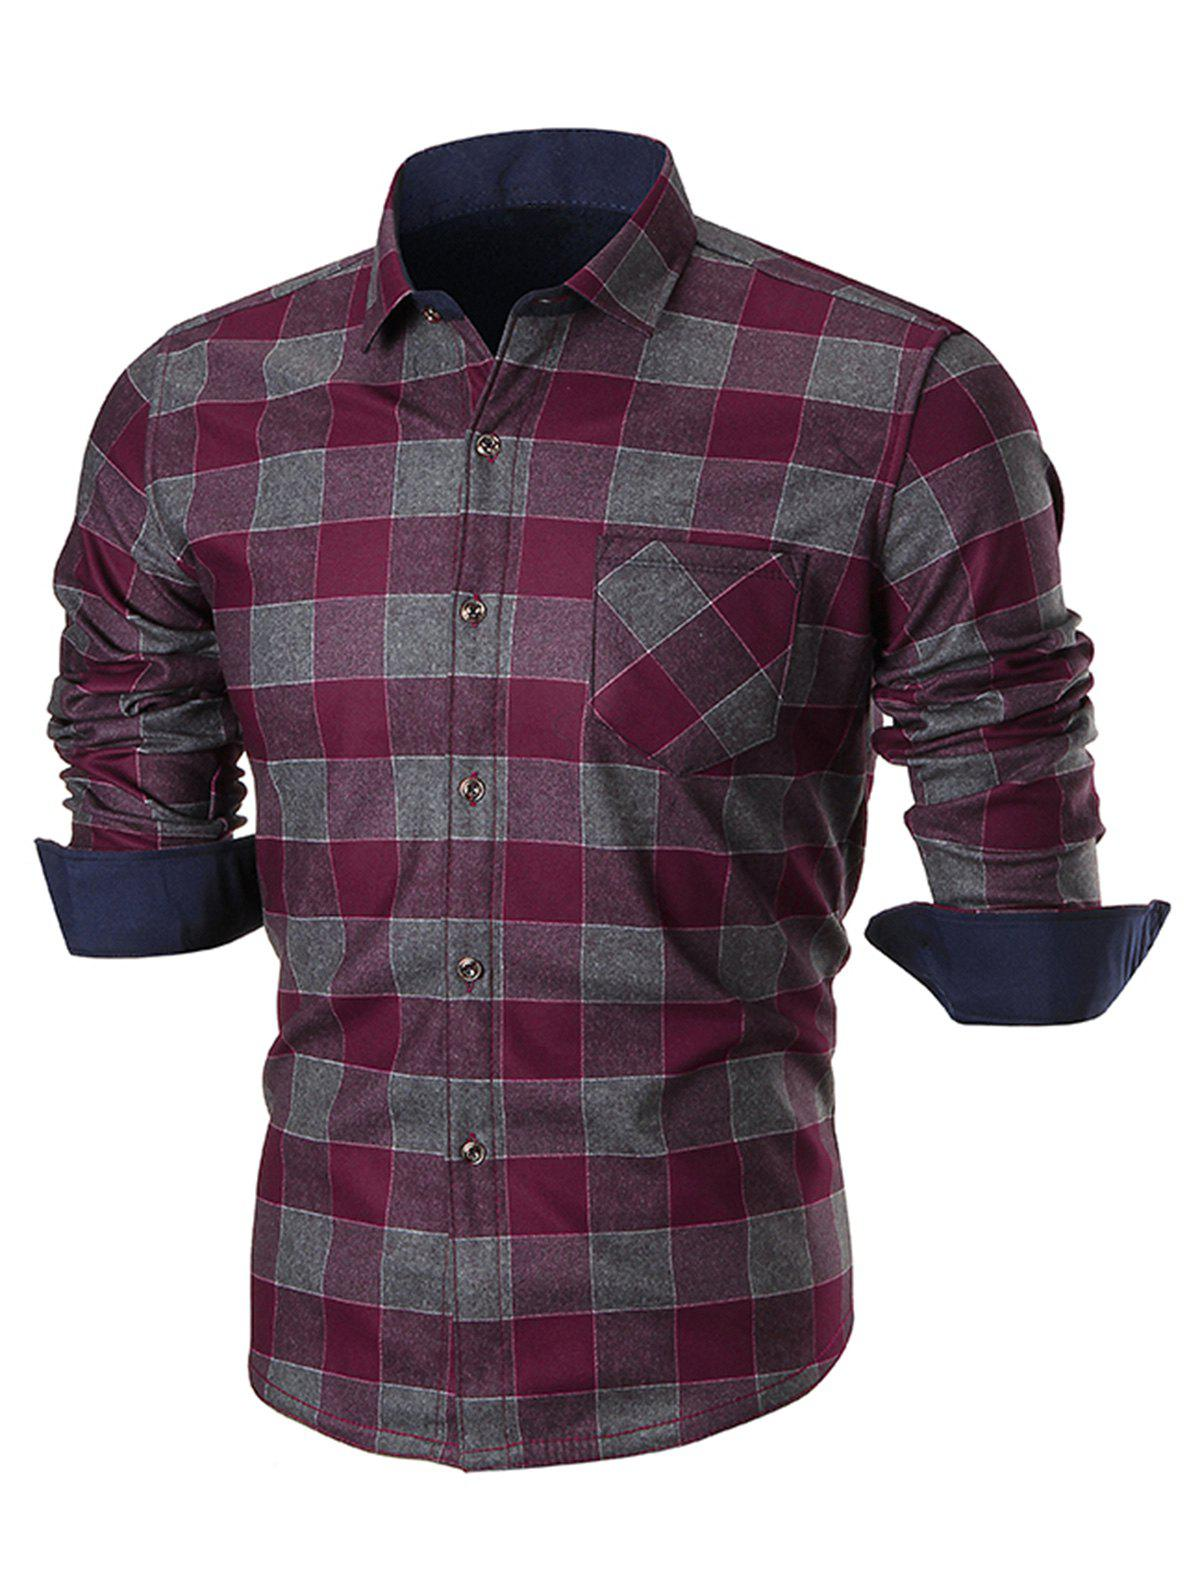 Chest Pocket Slim Fit Plaid Shirt - WINE RED 3XL